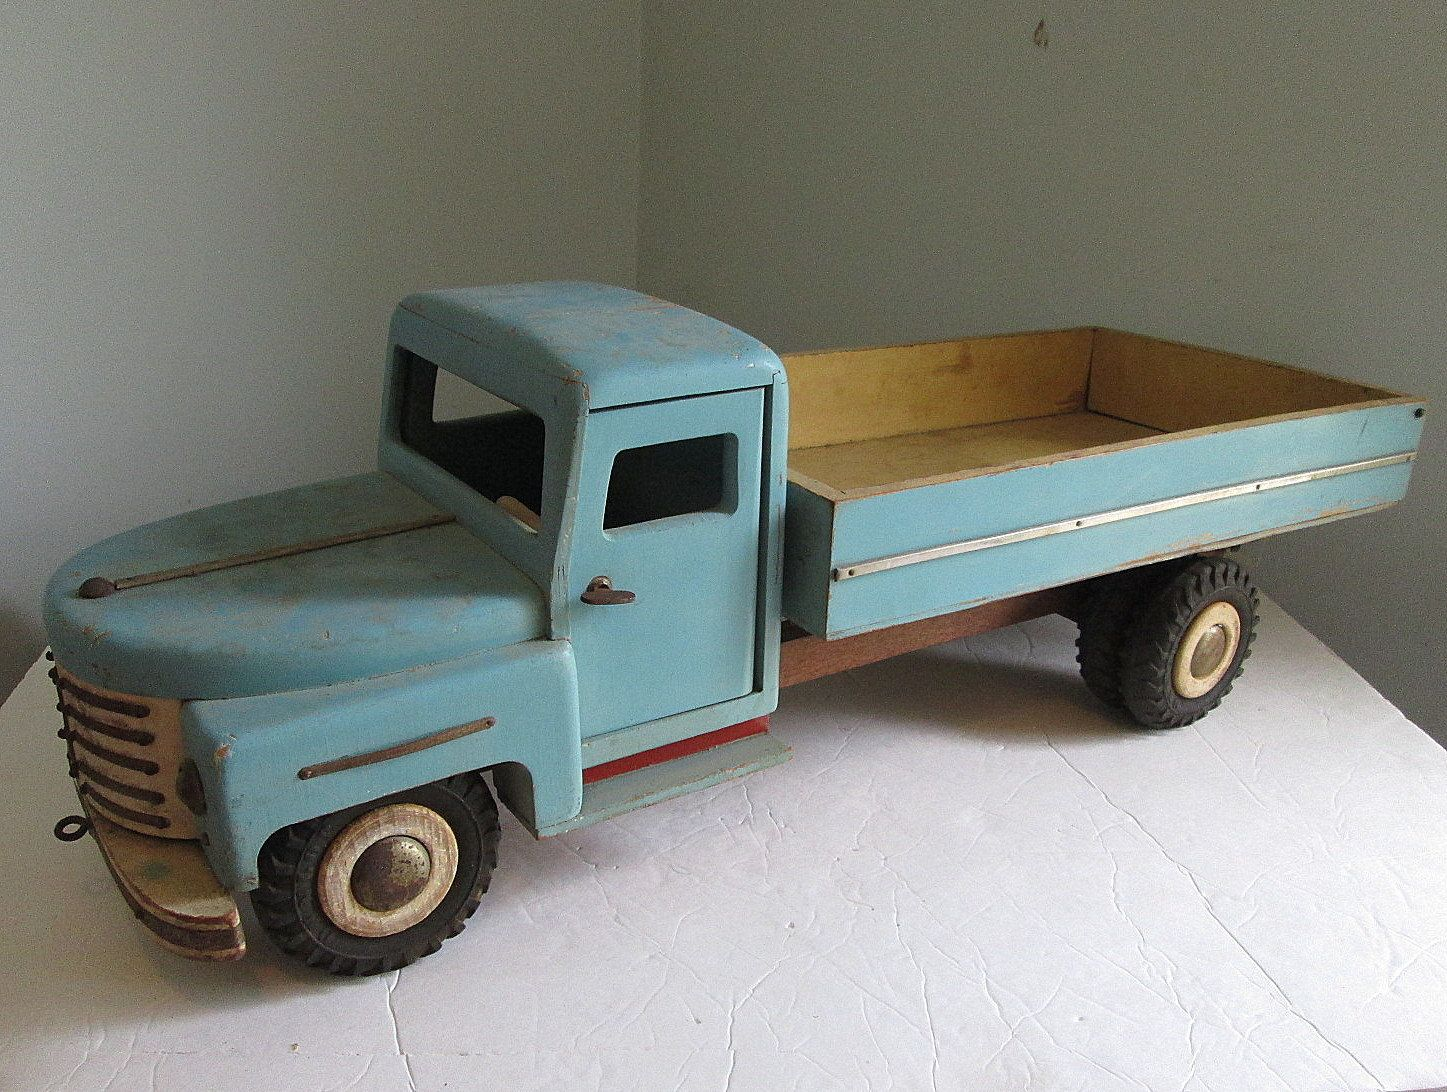 "Unique 1950's Handmade Wooden Toy Truck Huge 27"" Professional Look Folk Art Automotive Car Creative Playthings by suburbantreasure on Etsy"